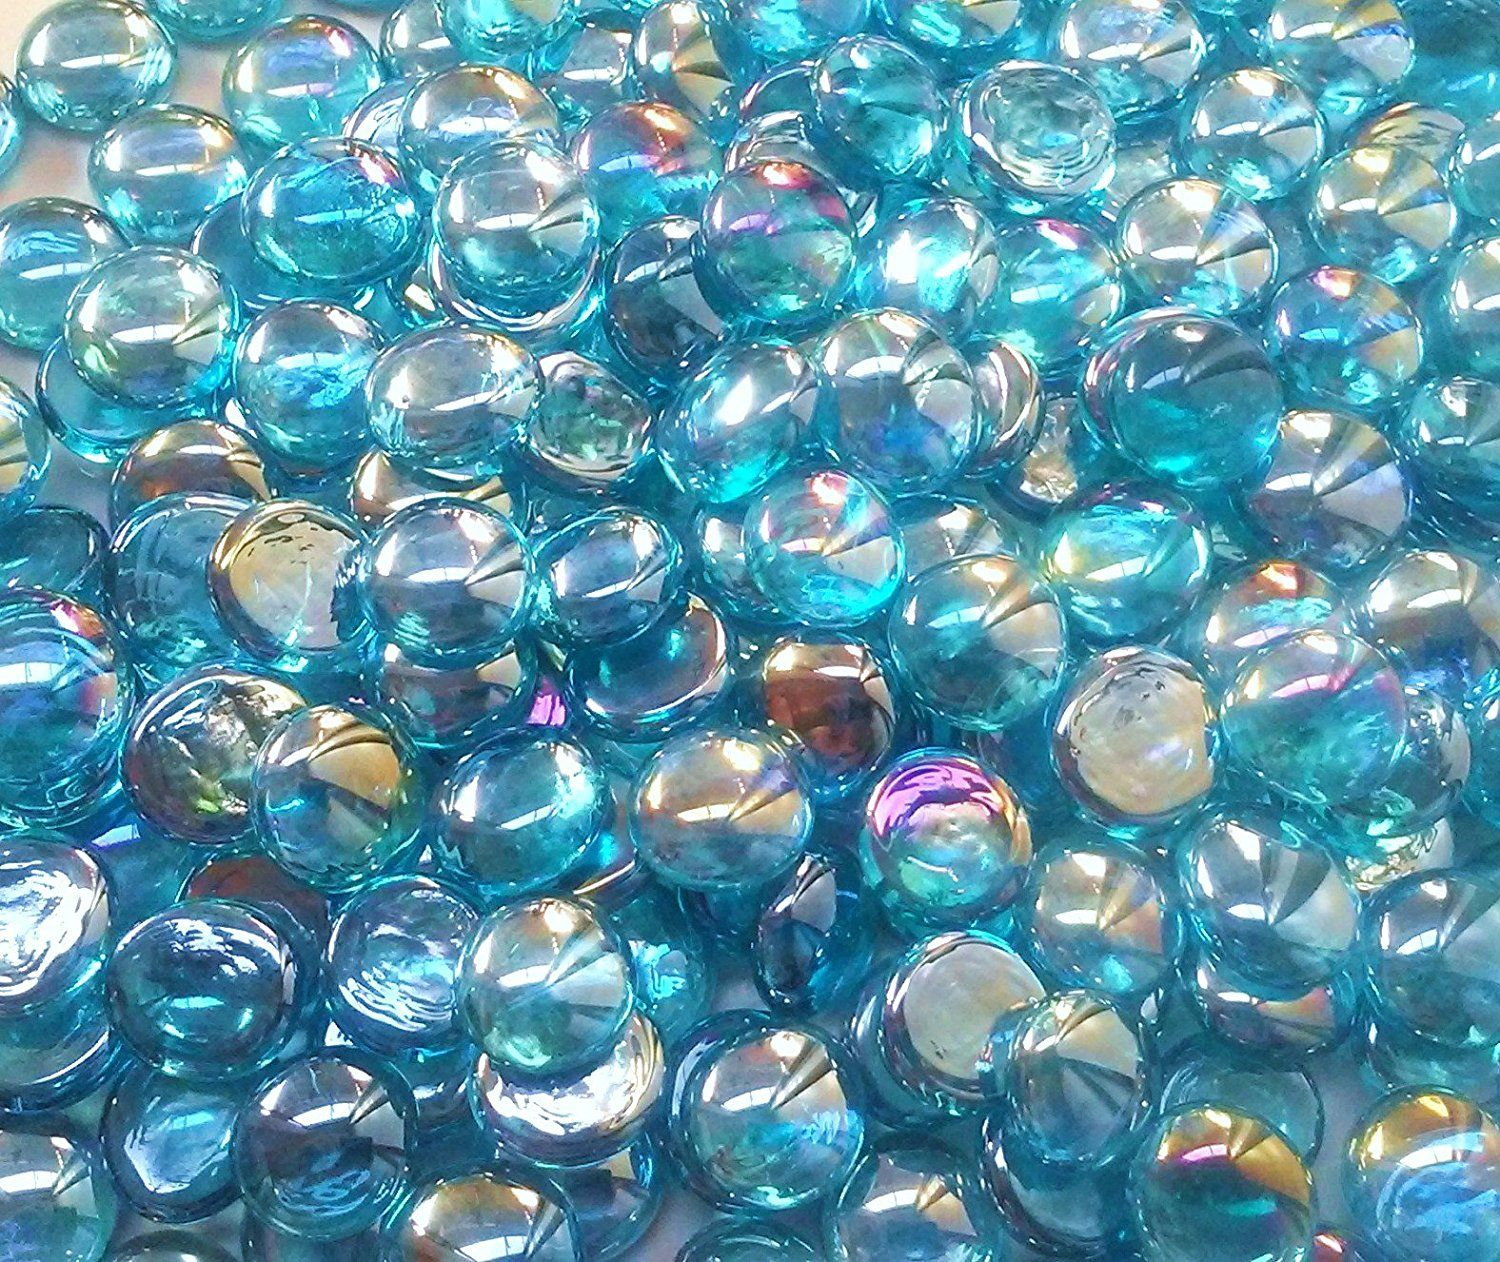 blue mix for teal fillers pin hole floating no pearl vase centerpiece pearls jumbo filler light size